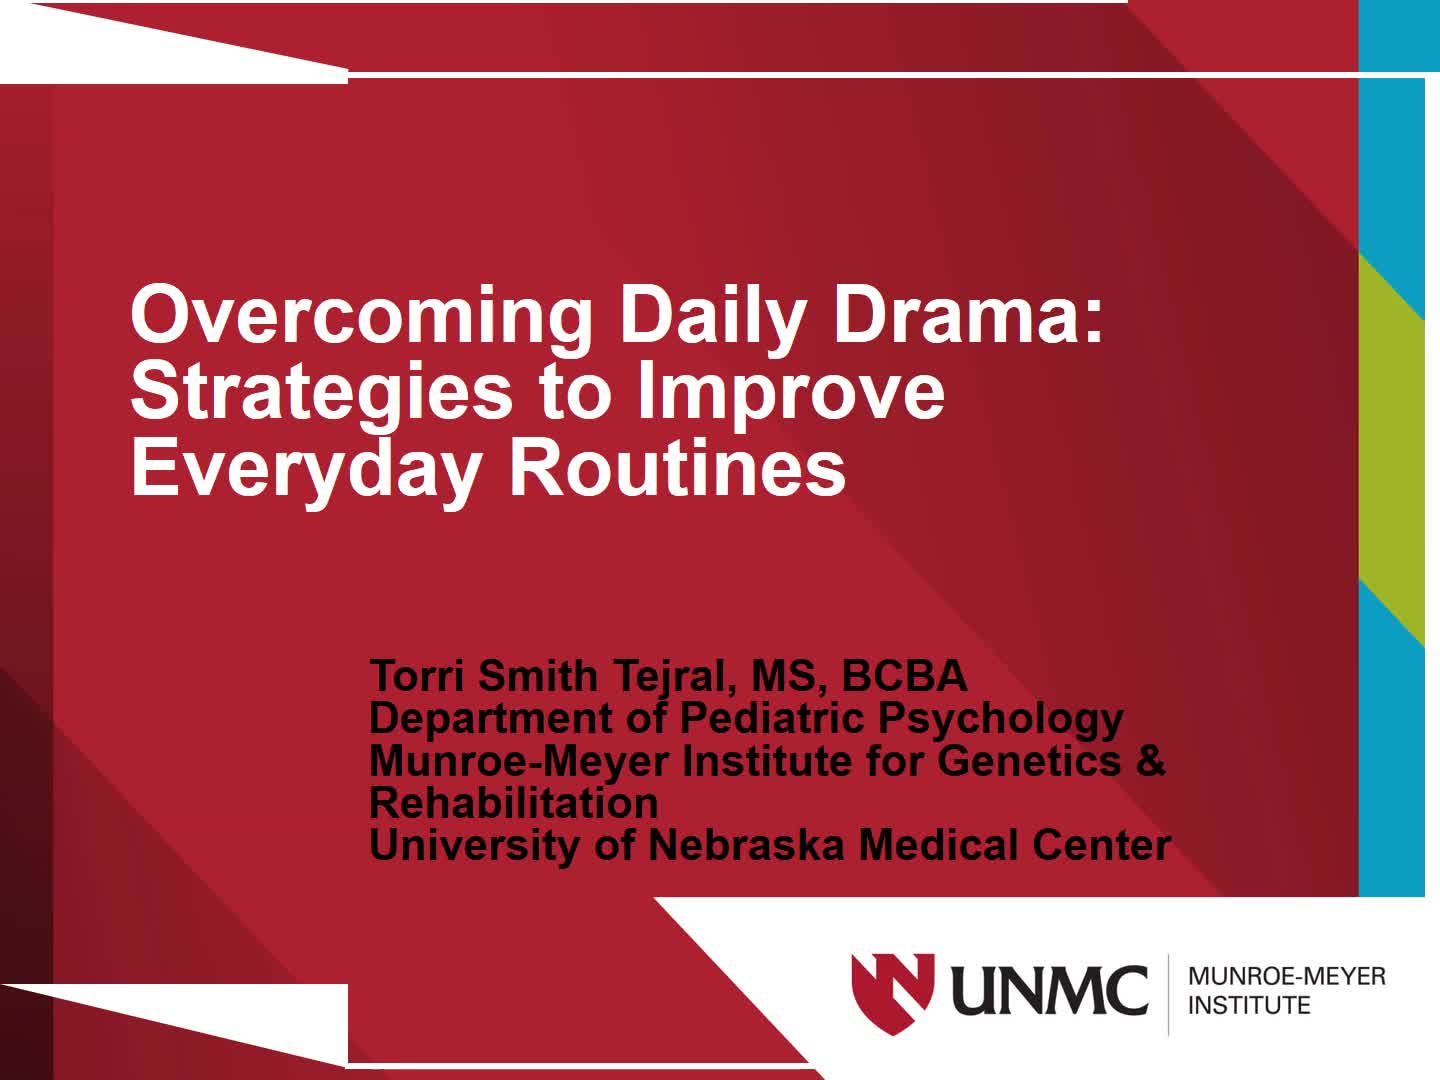 Overcoming Daily Drama: Strategies to Improve Everyday Routines